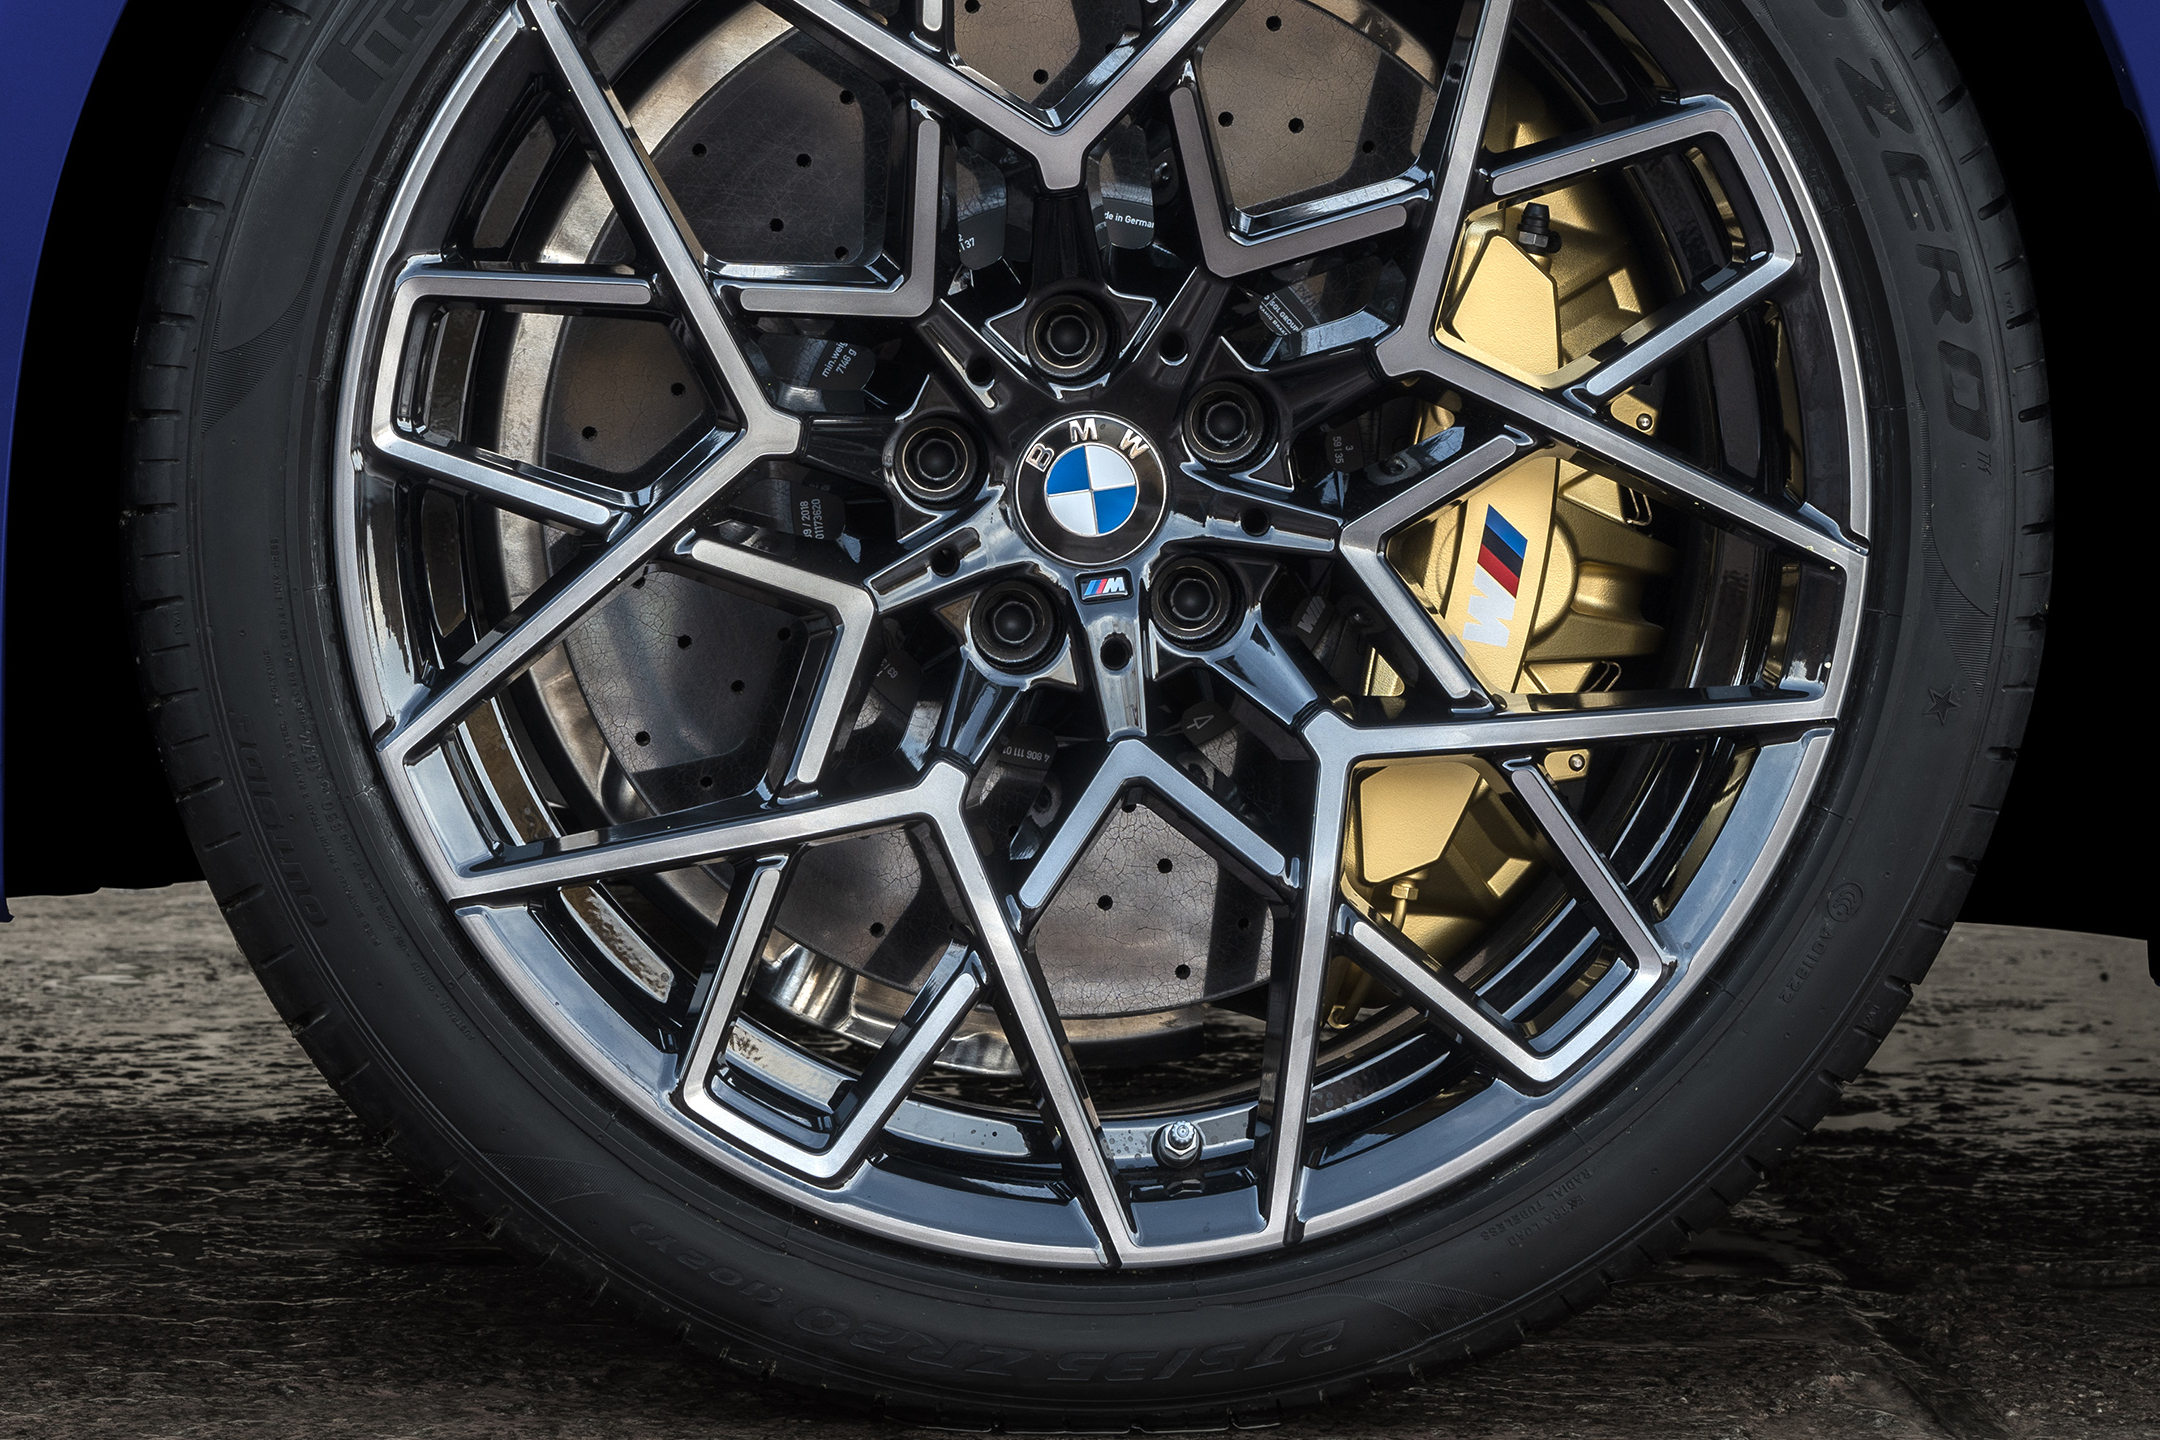 BMW M8 Competition Coupe - 2019 - front wheel / jante avant - brake disc / disque de frein